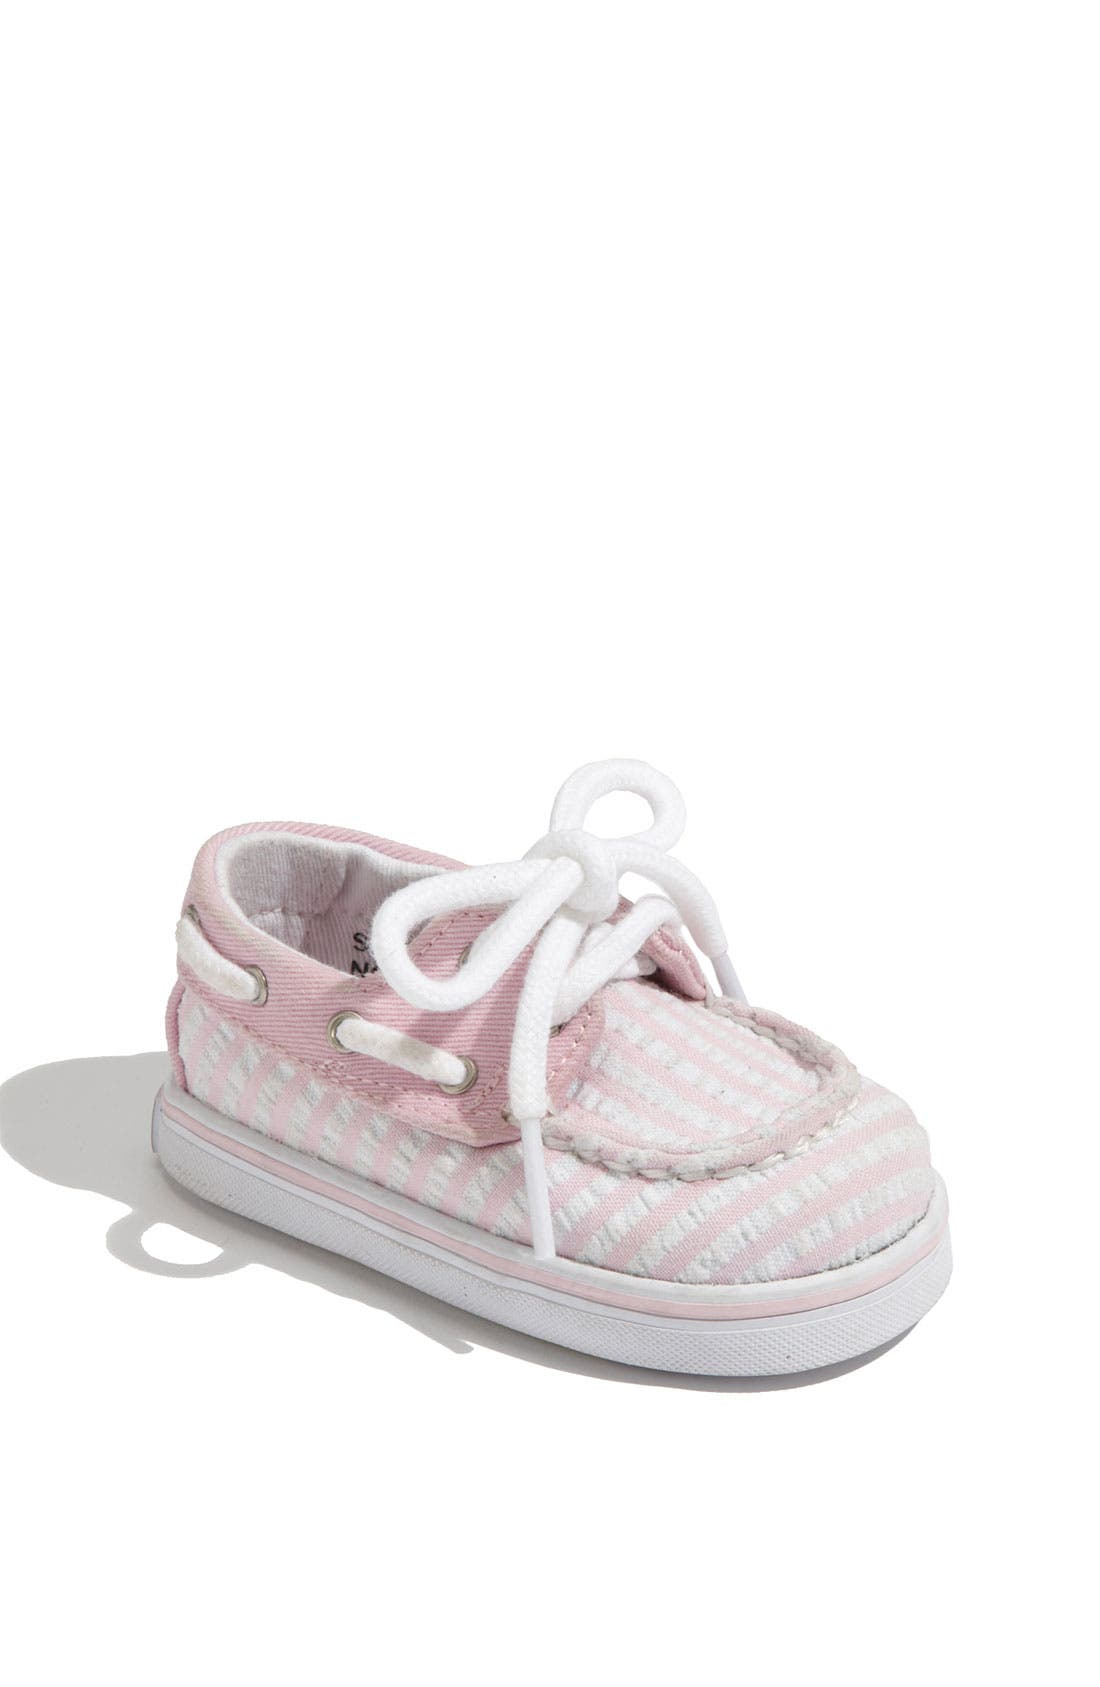 Main Image - Sperry Kids 'Bahama' Crib Shoe (Baby)